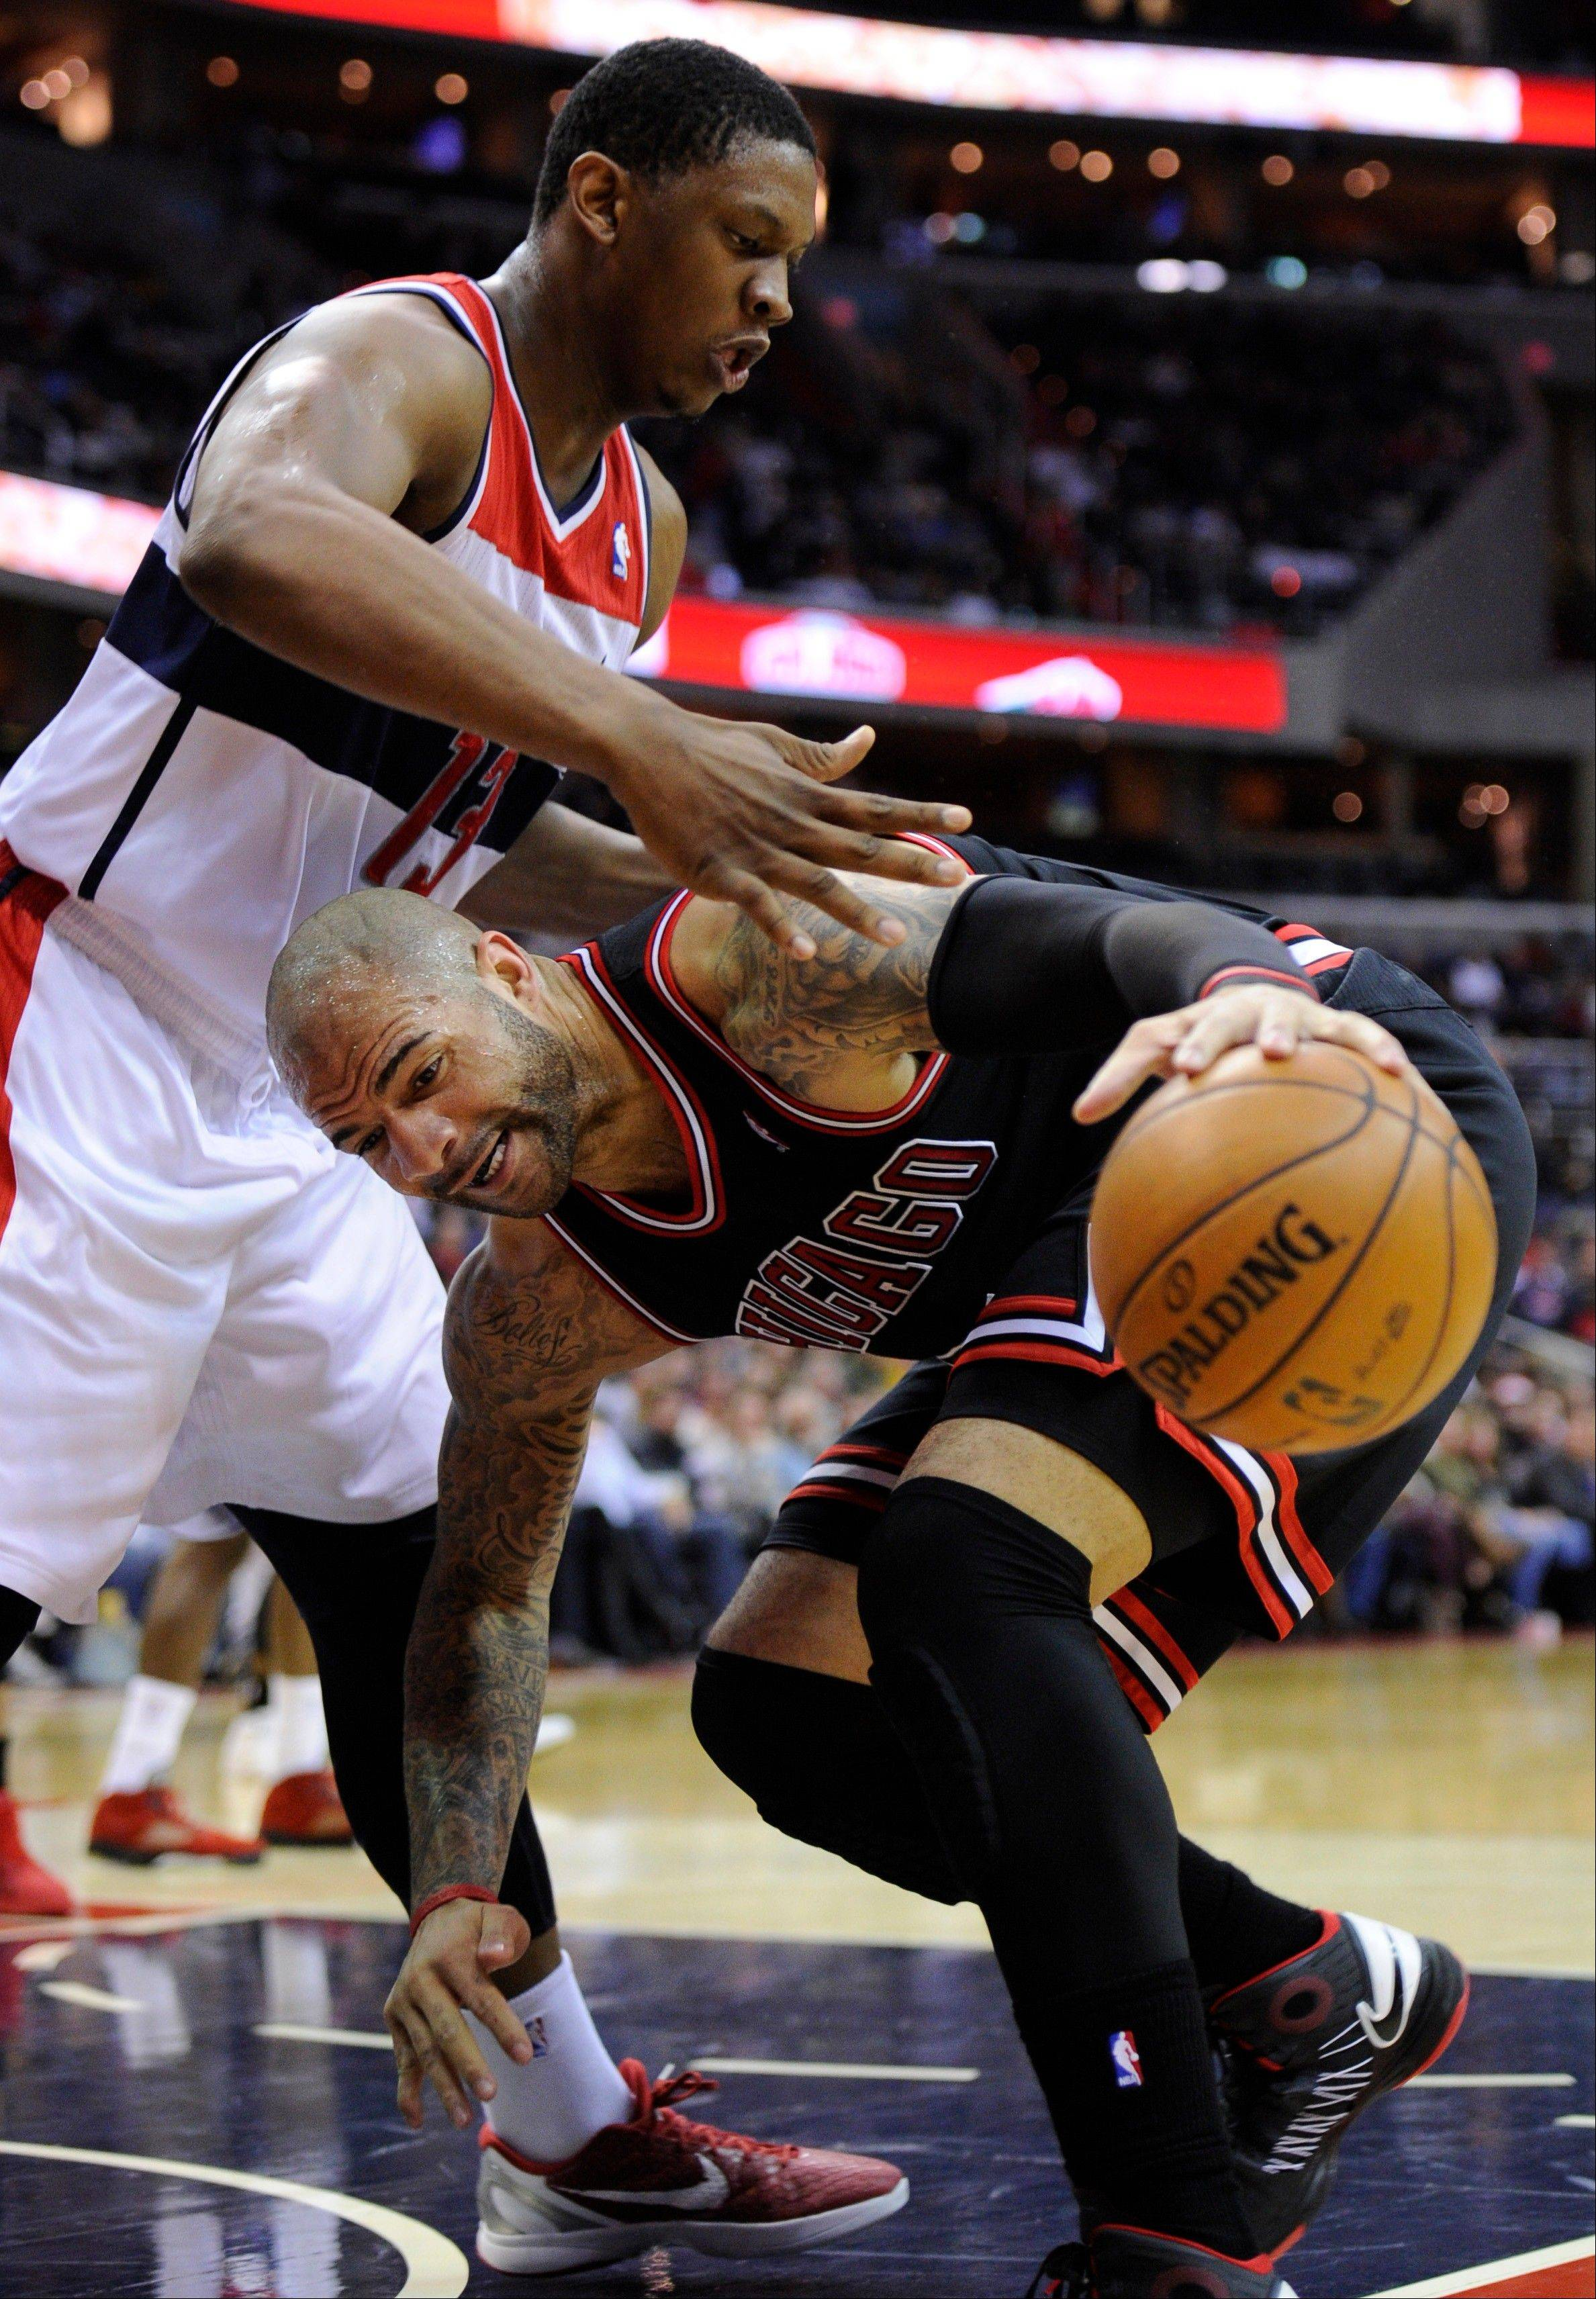 Chicago Bulls forward Carlos Boozer, right, drives to the basket against Washington Wizards forward Kevin Seraphin (13) during the first half of an NBA basketball game, Saturday, Jan. 26, 2013, in Washington.